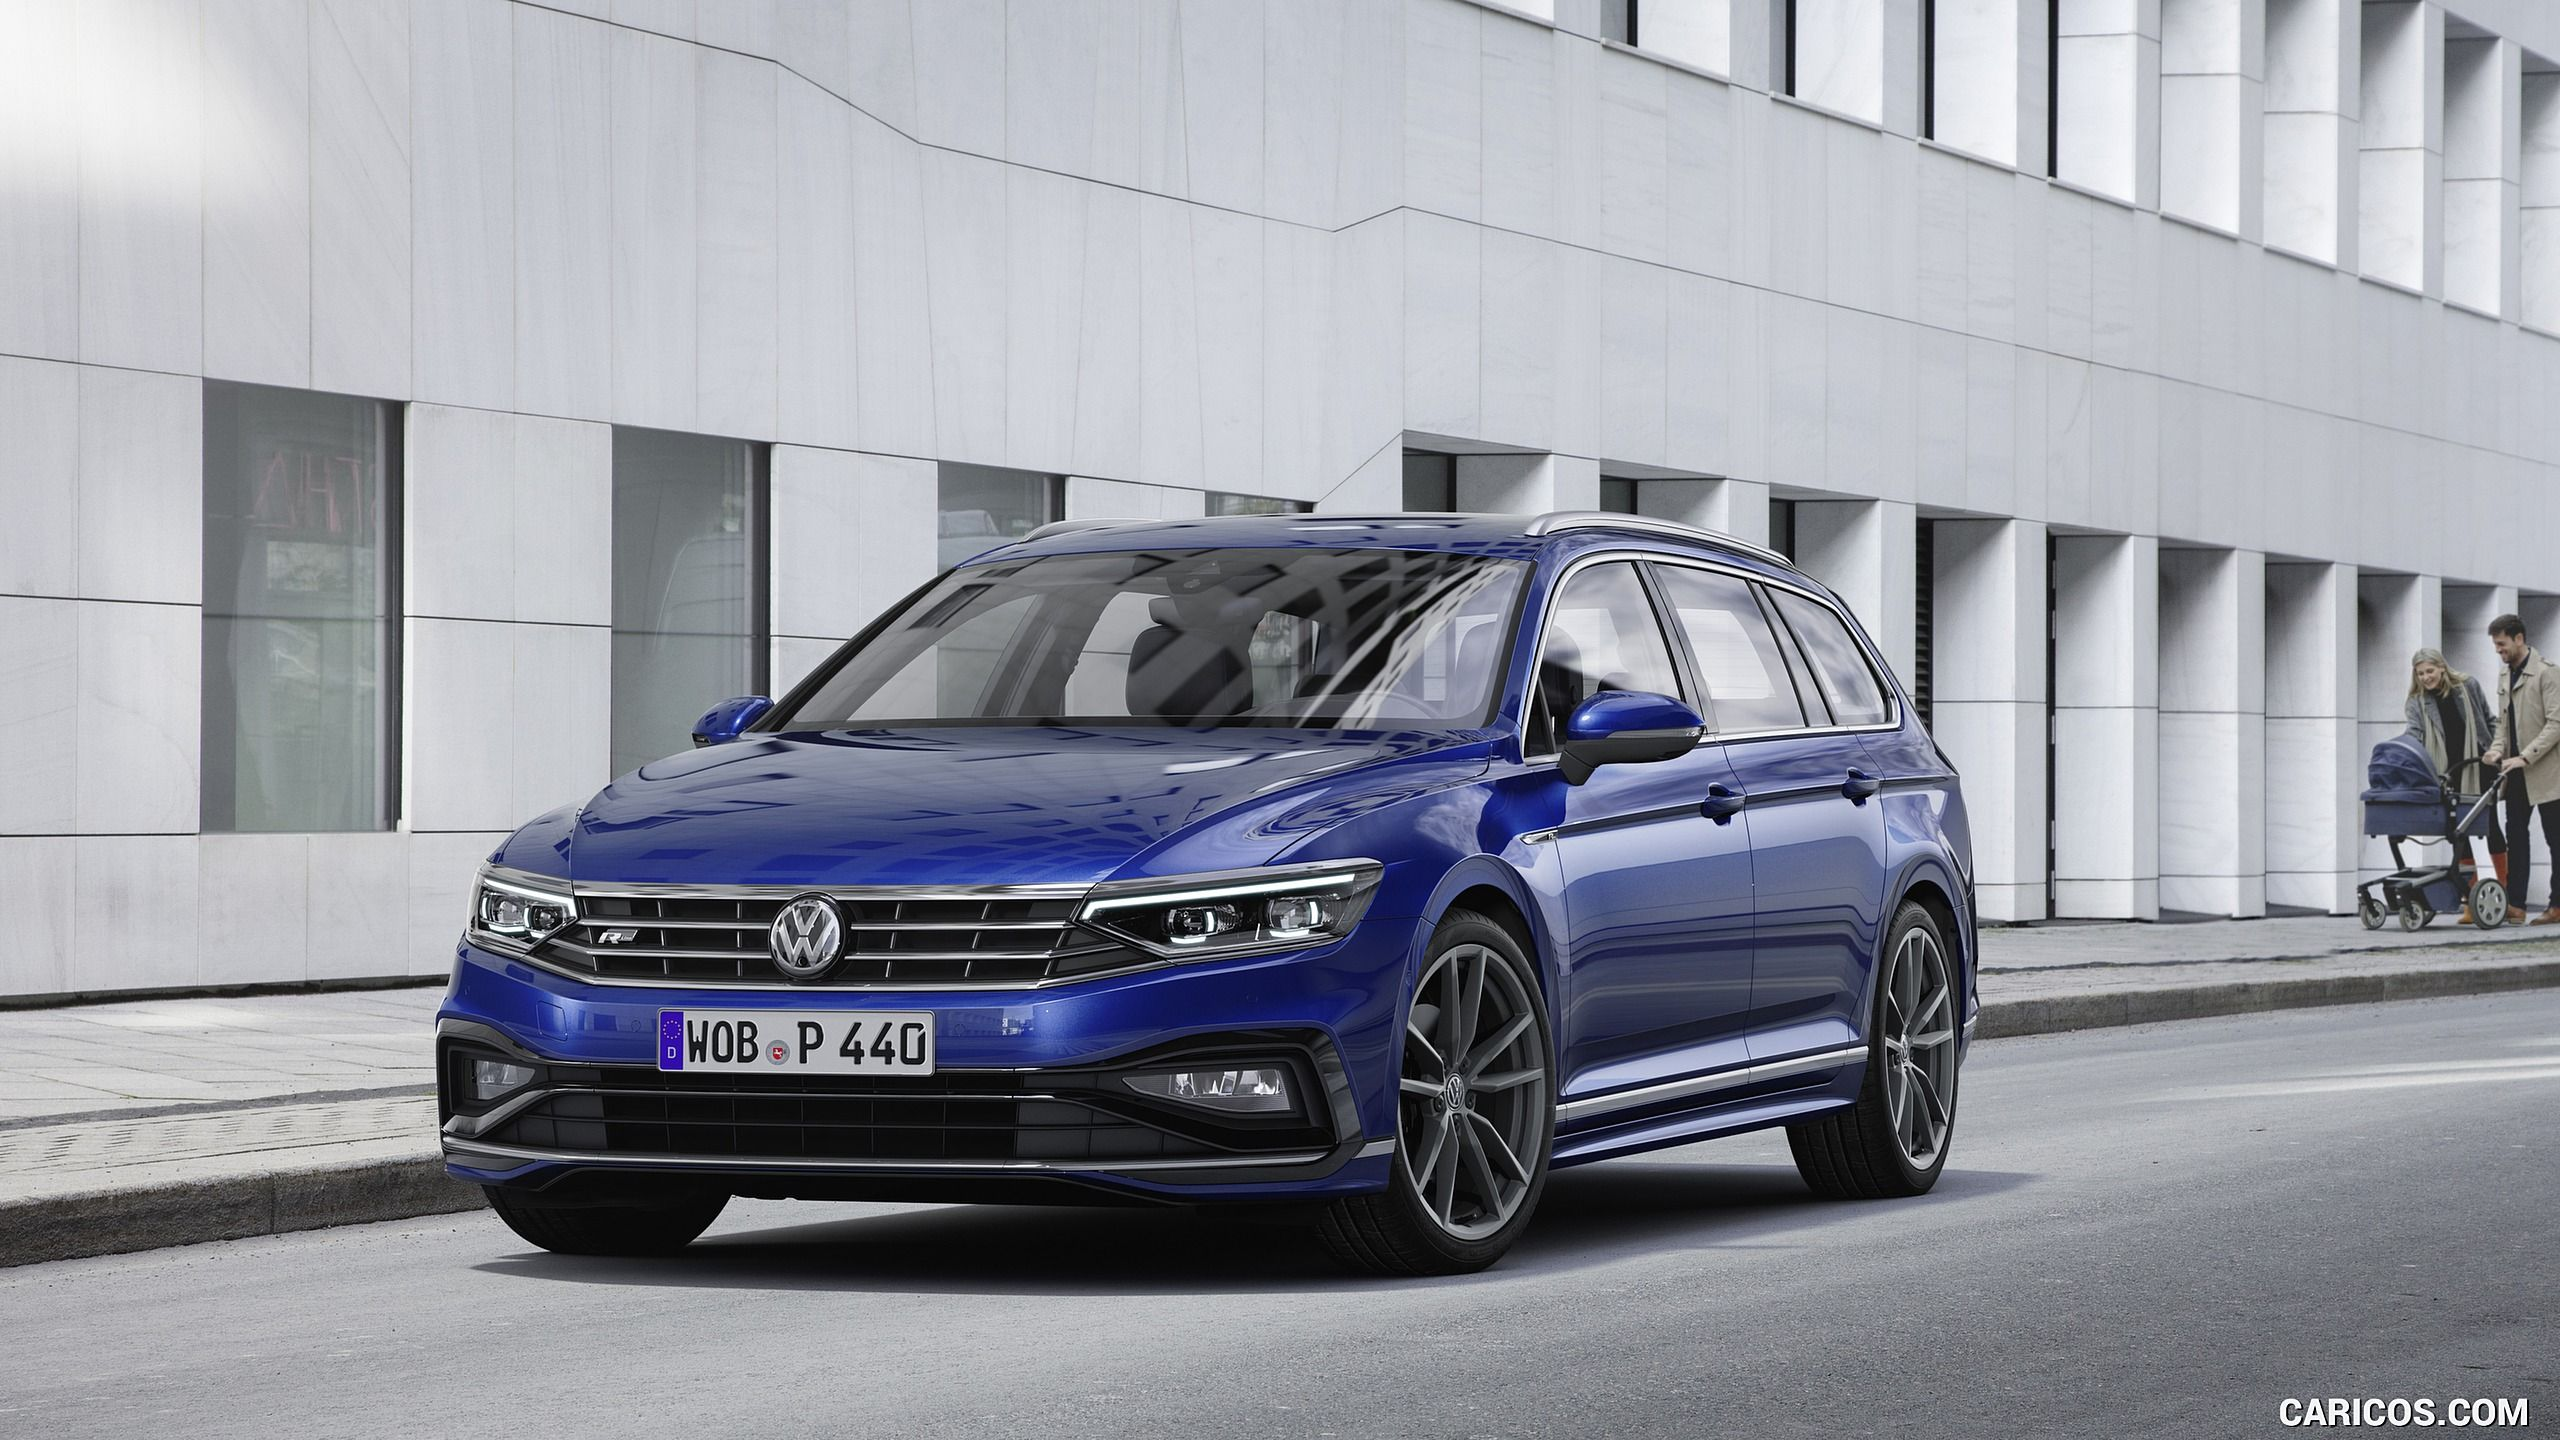 2020 Volkswagen Passat Variant Eu Spec Rear Three Quarter Hd Vw Wagon Jetta Wagon Volkswagen Passat